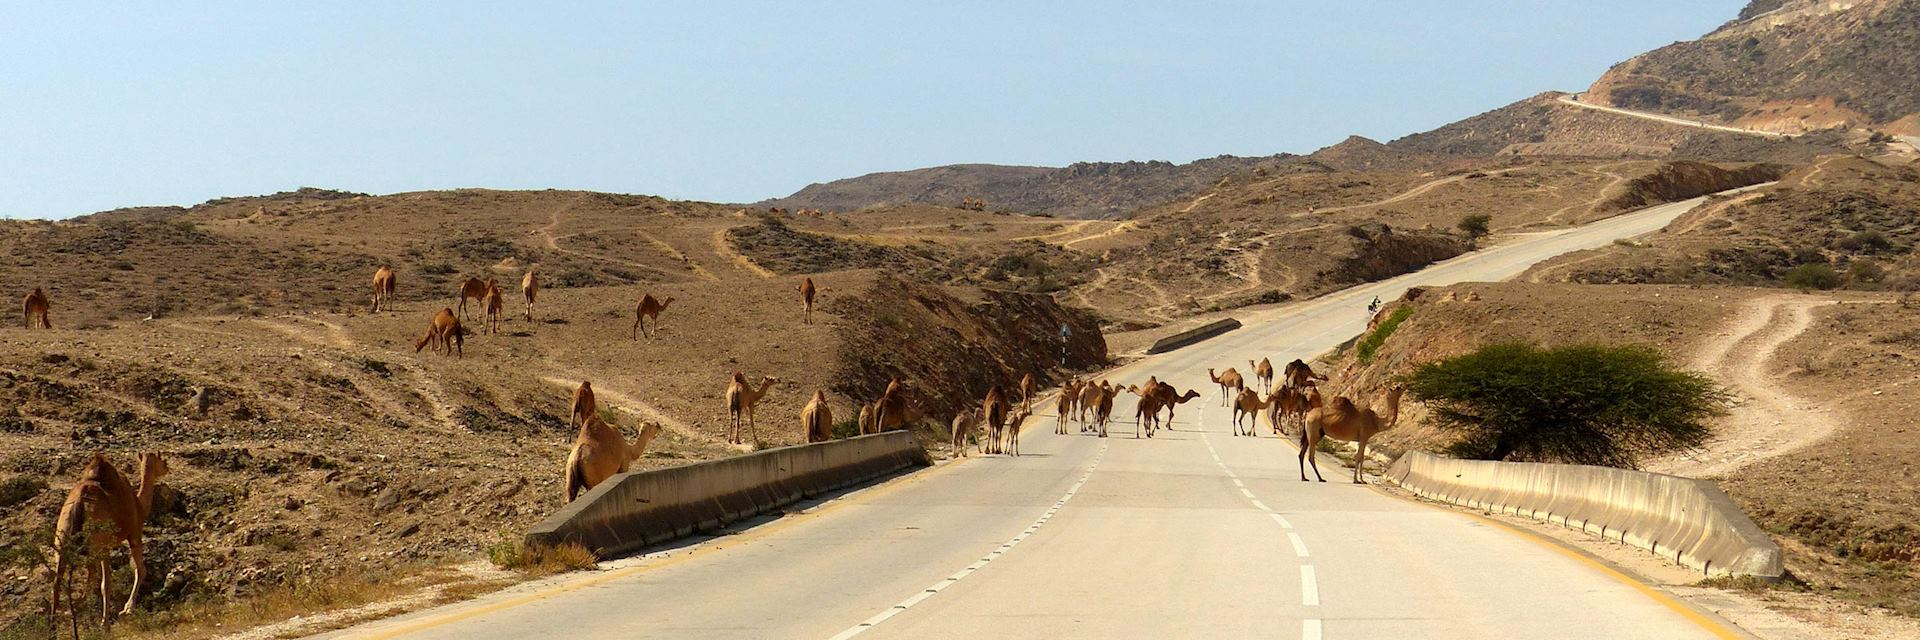 Camels in road in Dhofar, Oman